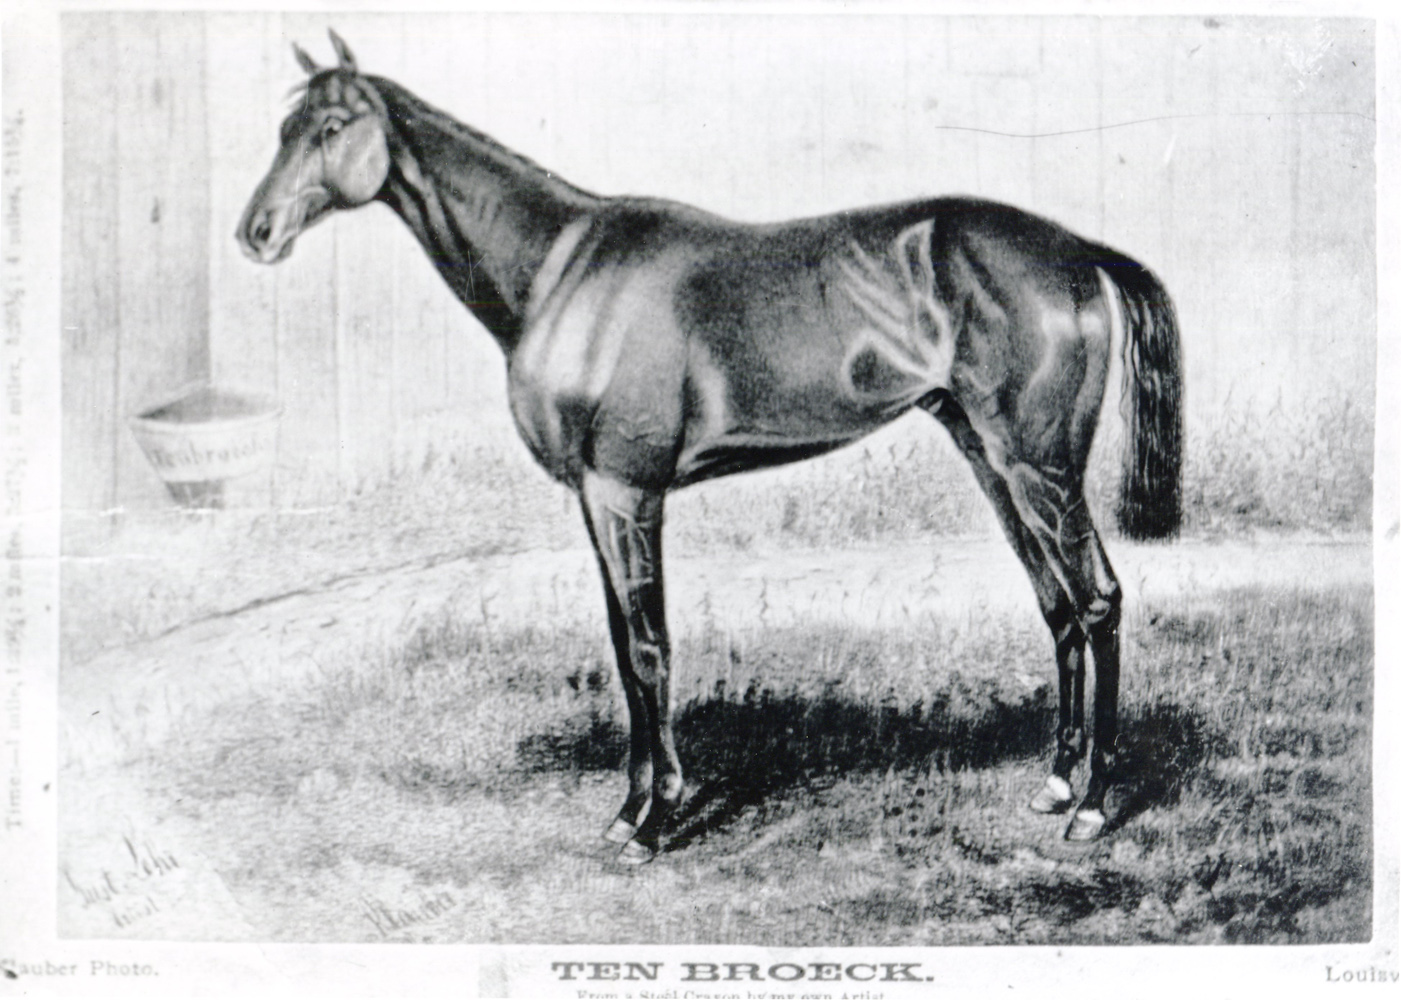 Portrait of Ten Broeck (Keeneland Library McClure Collection/Musuem Collection)